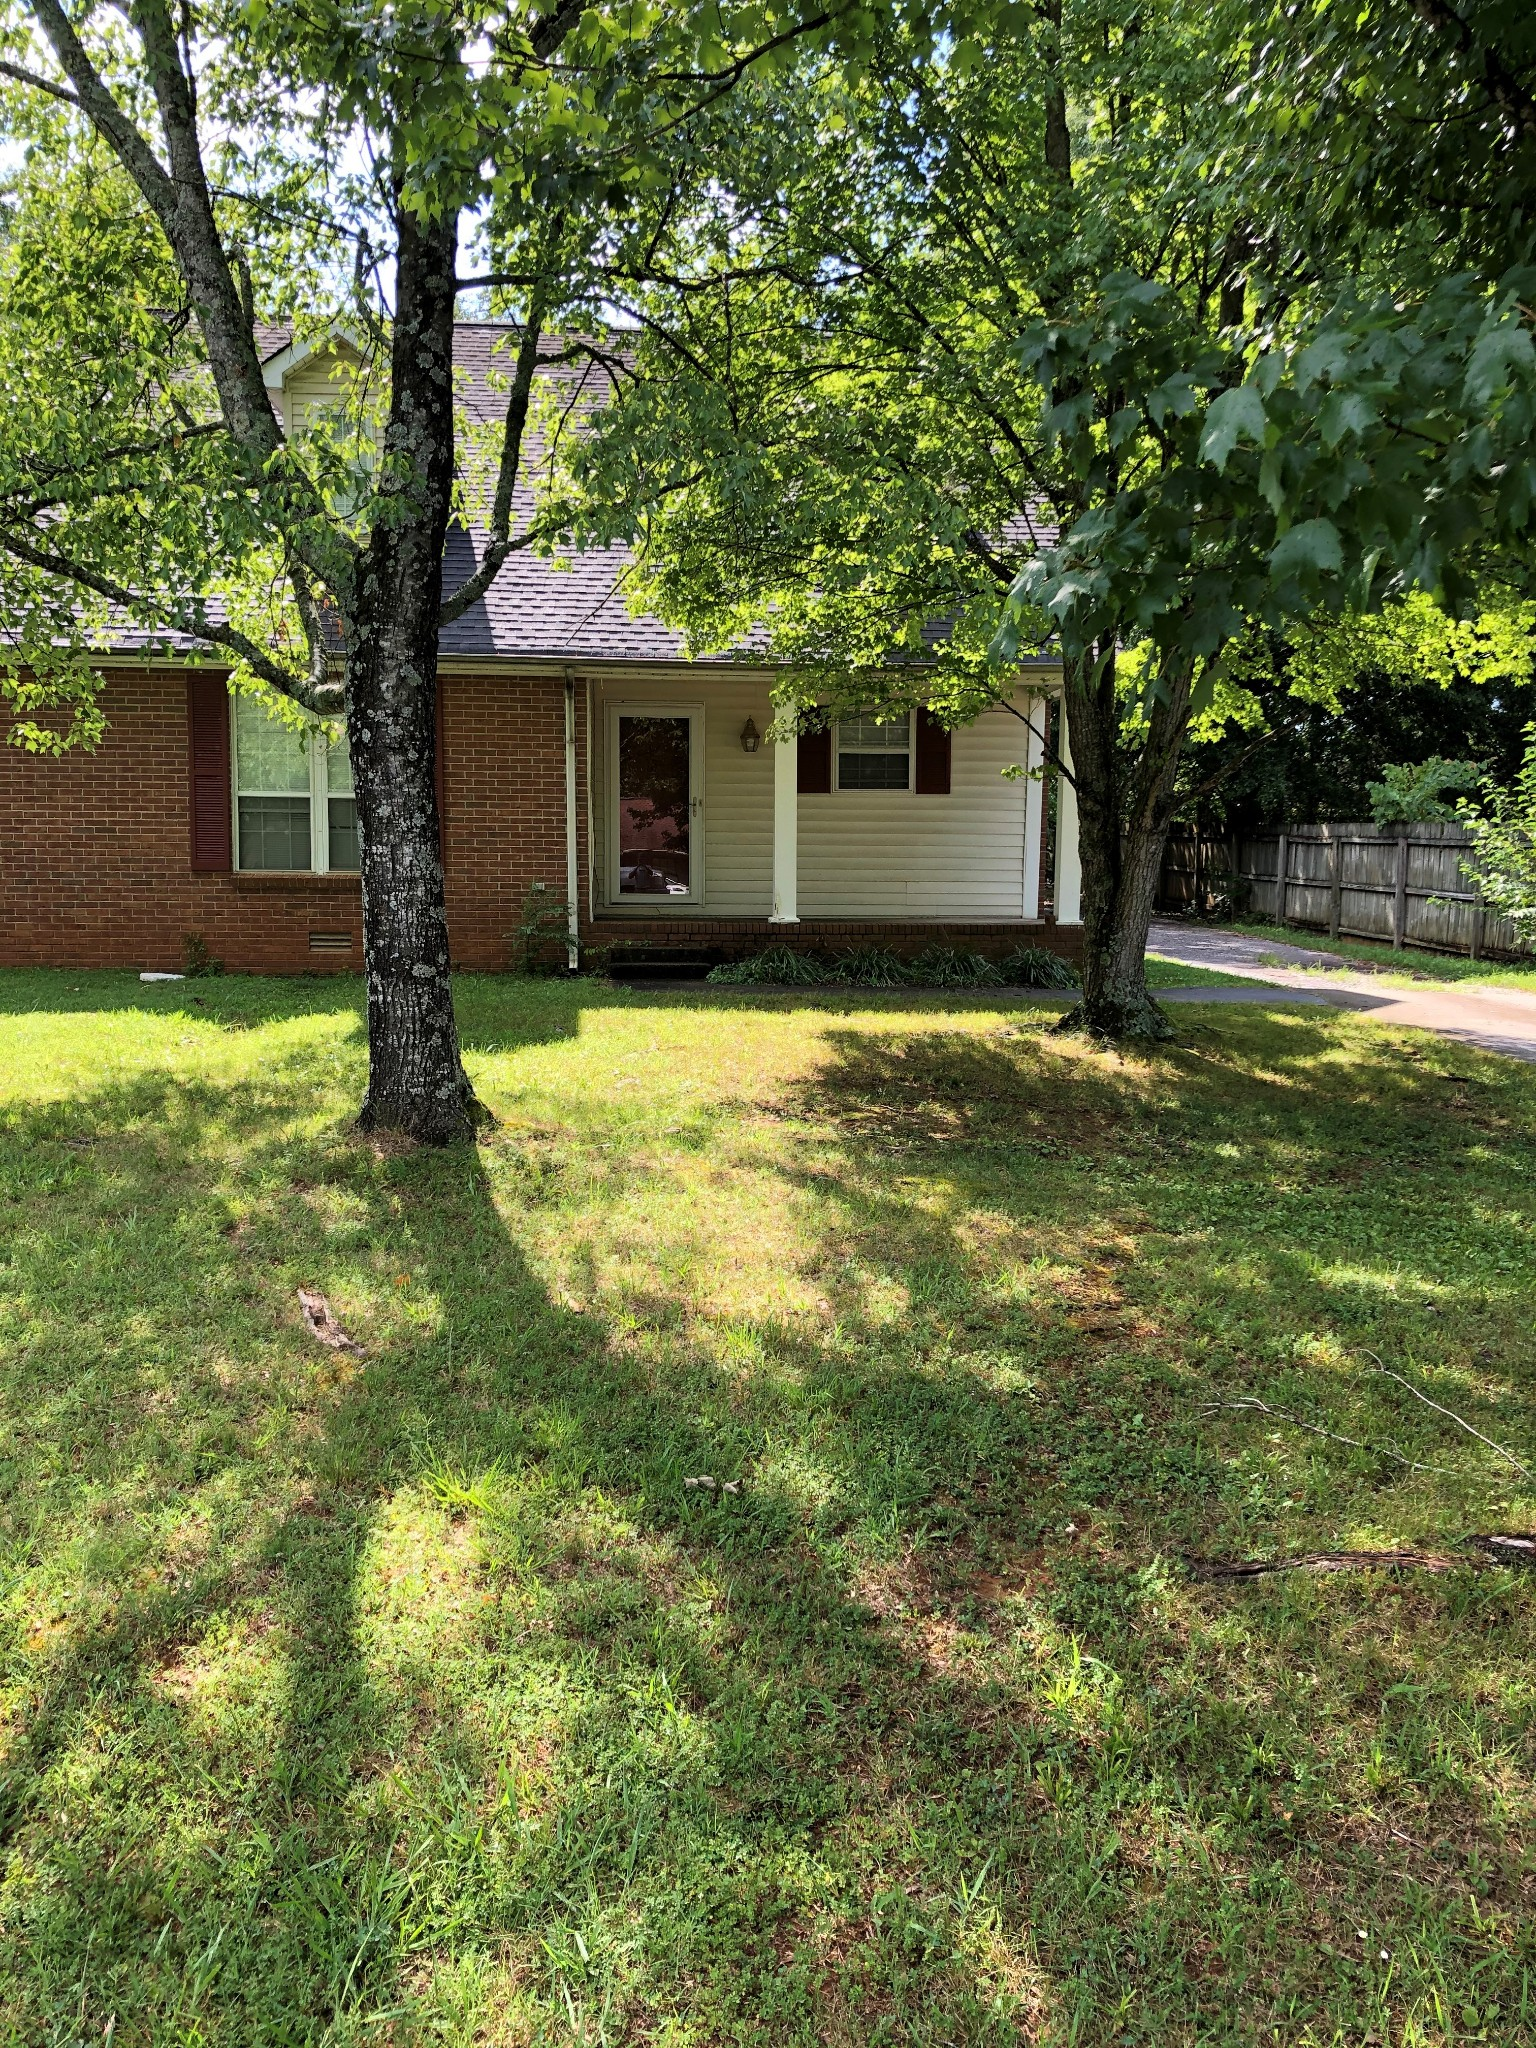 Wonderful large 4 bedroom, 3 full bath brick home within walking distance of Oakland High school also featuring large storage room upstairs, back deck, detached outbuilding. Most appliances stay. Call to view this beautiful home on a quiet street minutes from Middle Tennessee University!